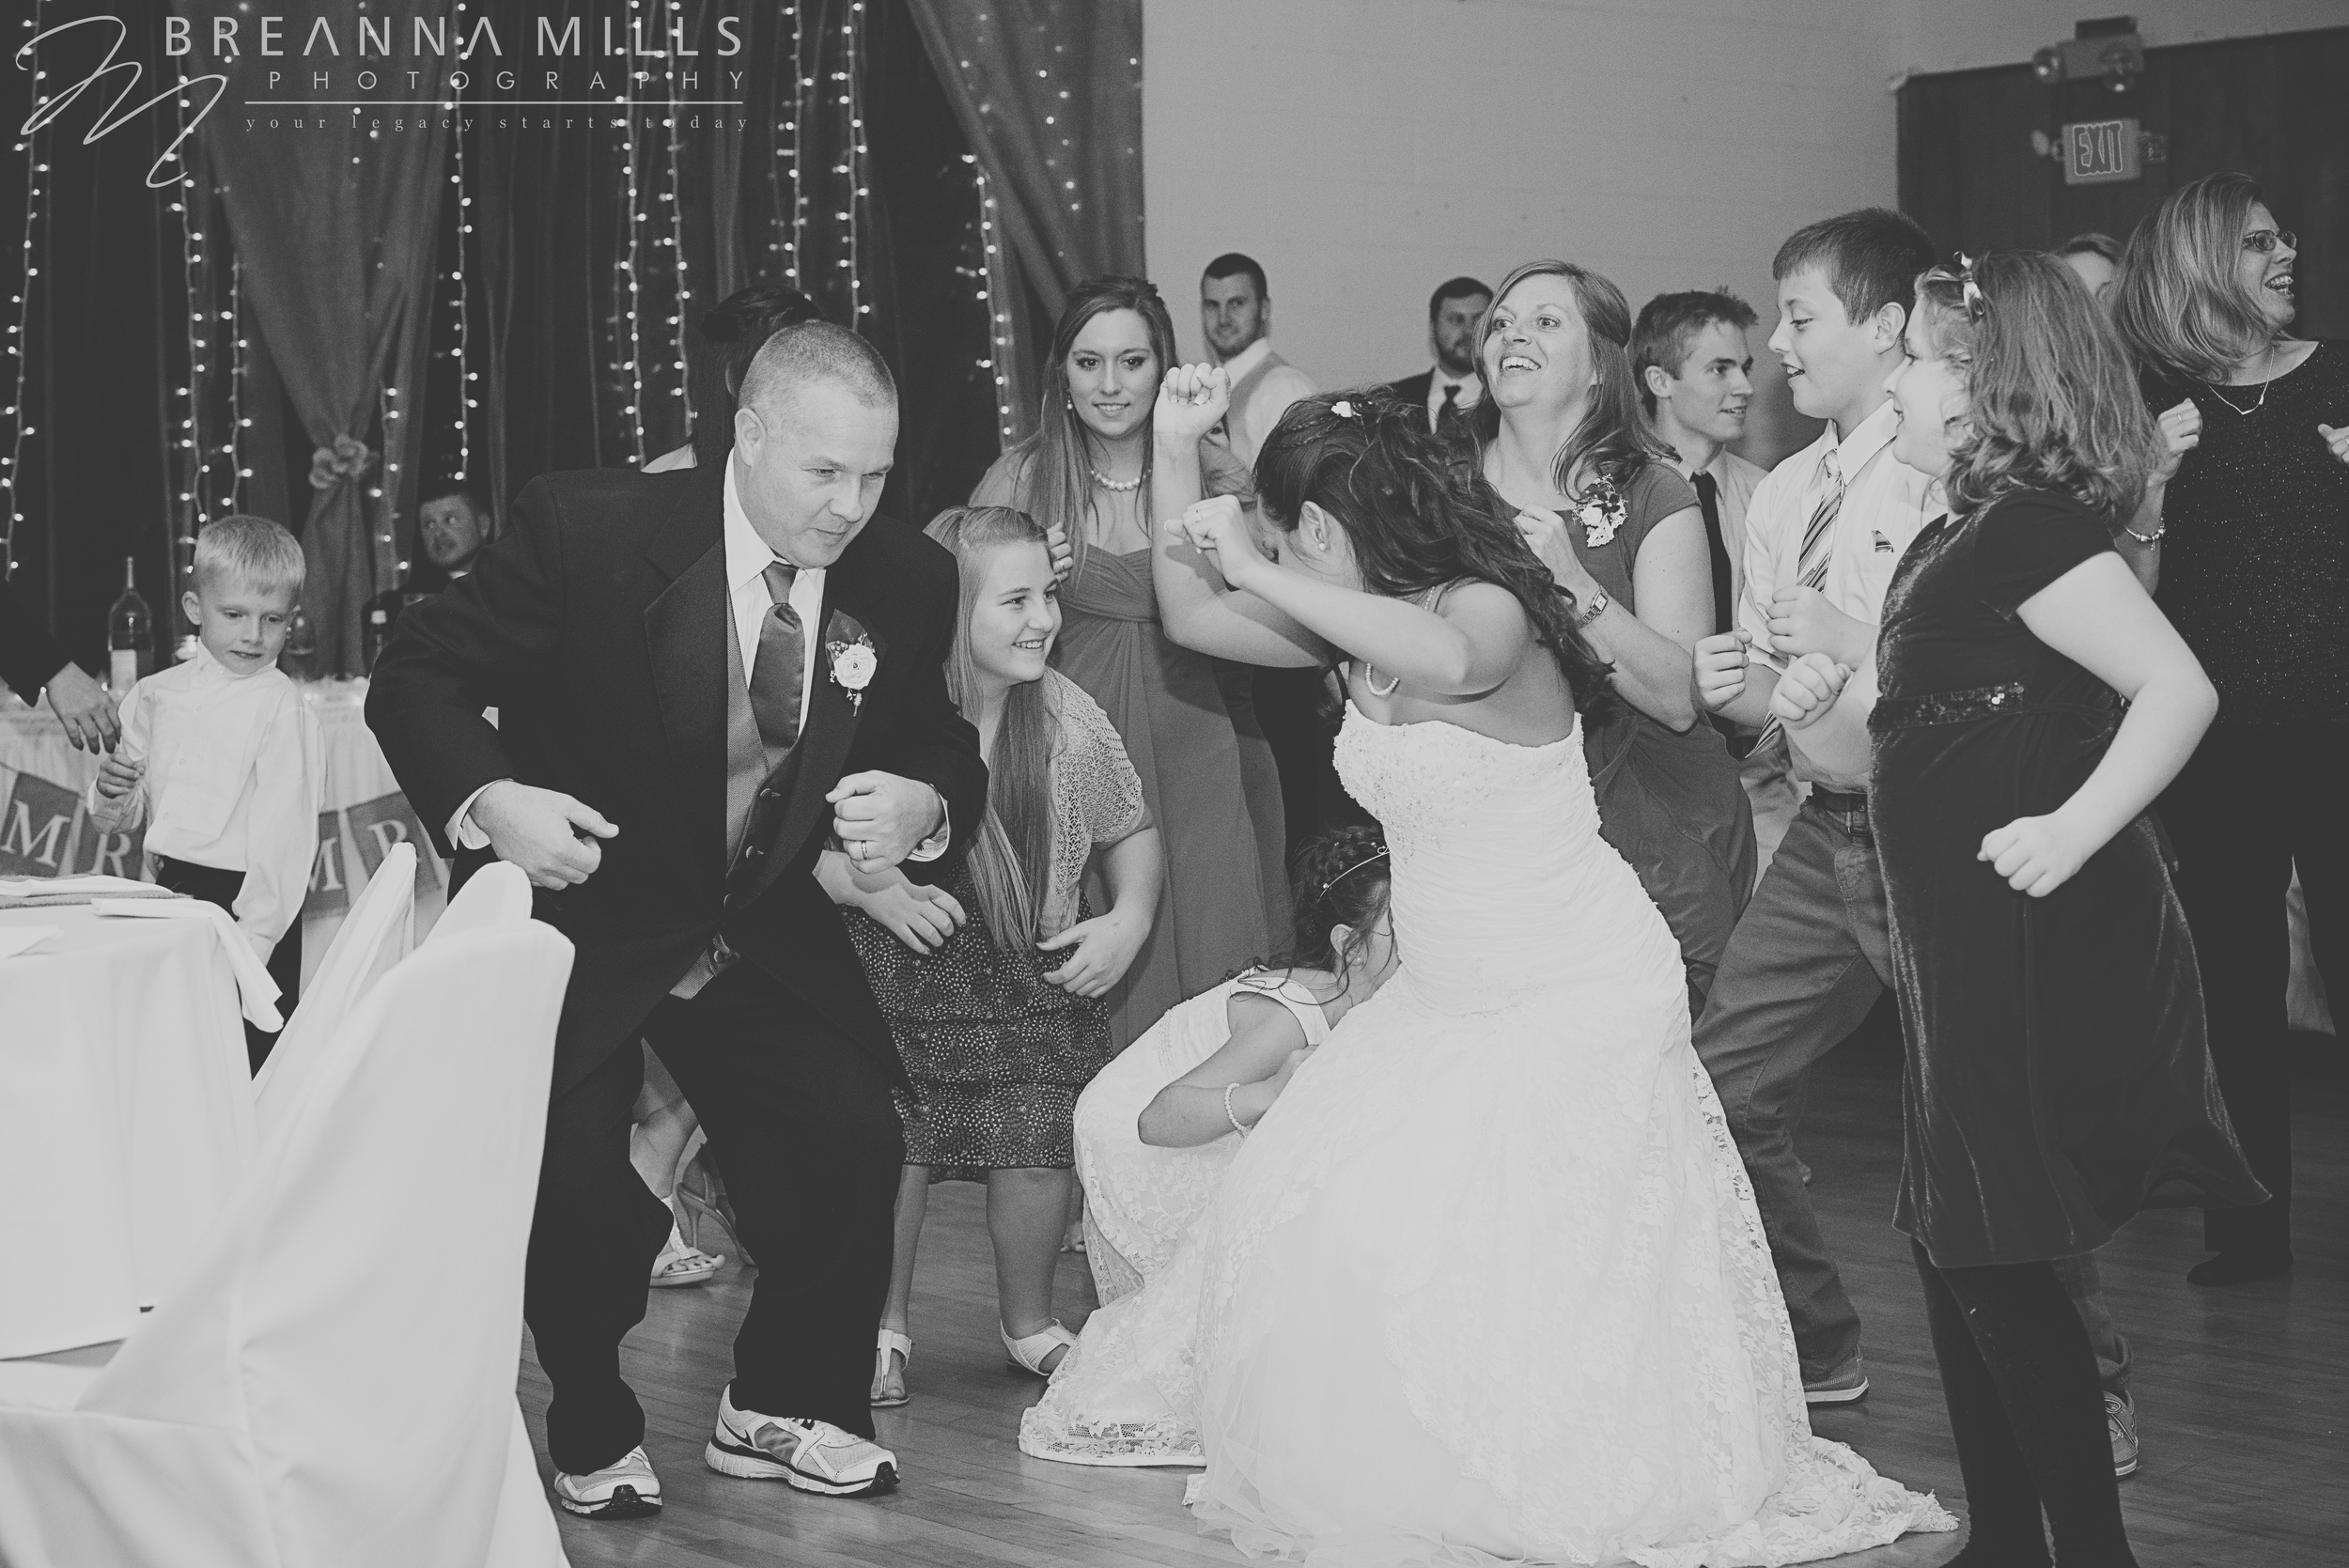 Johnson City wedding photographer, Breanna Mills Photography captures bride and father dancing during wedding reception.